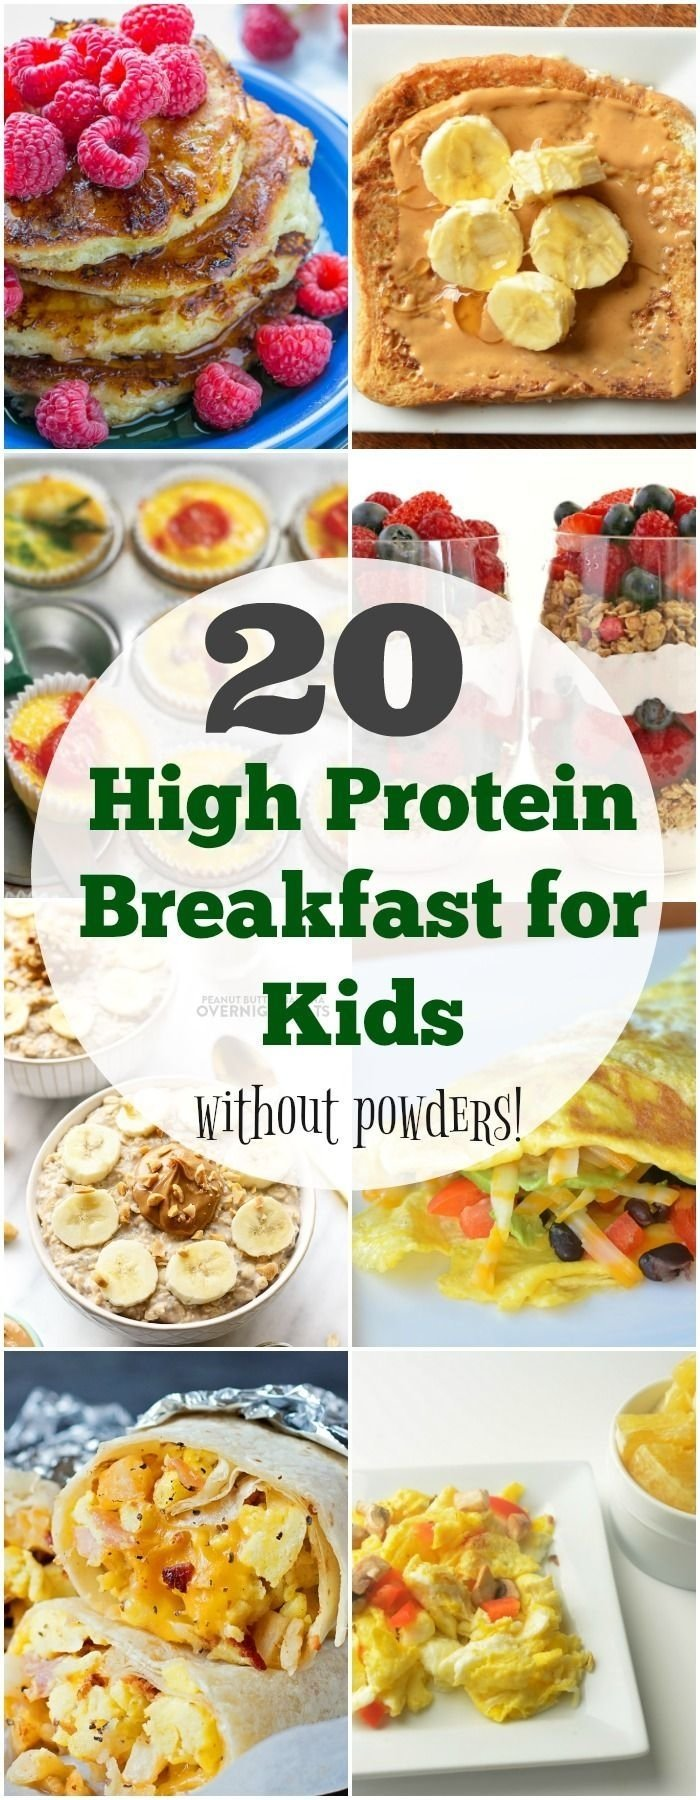 178 best baby eats images on pinterest | recipes for children, baby